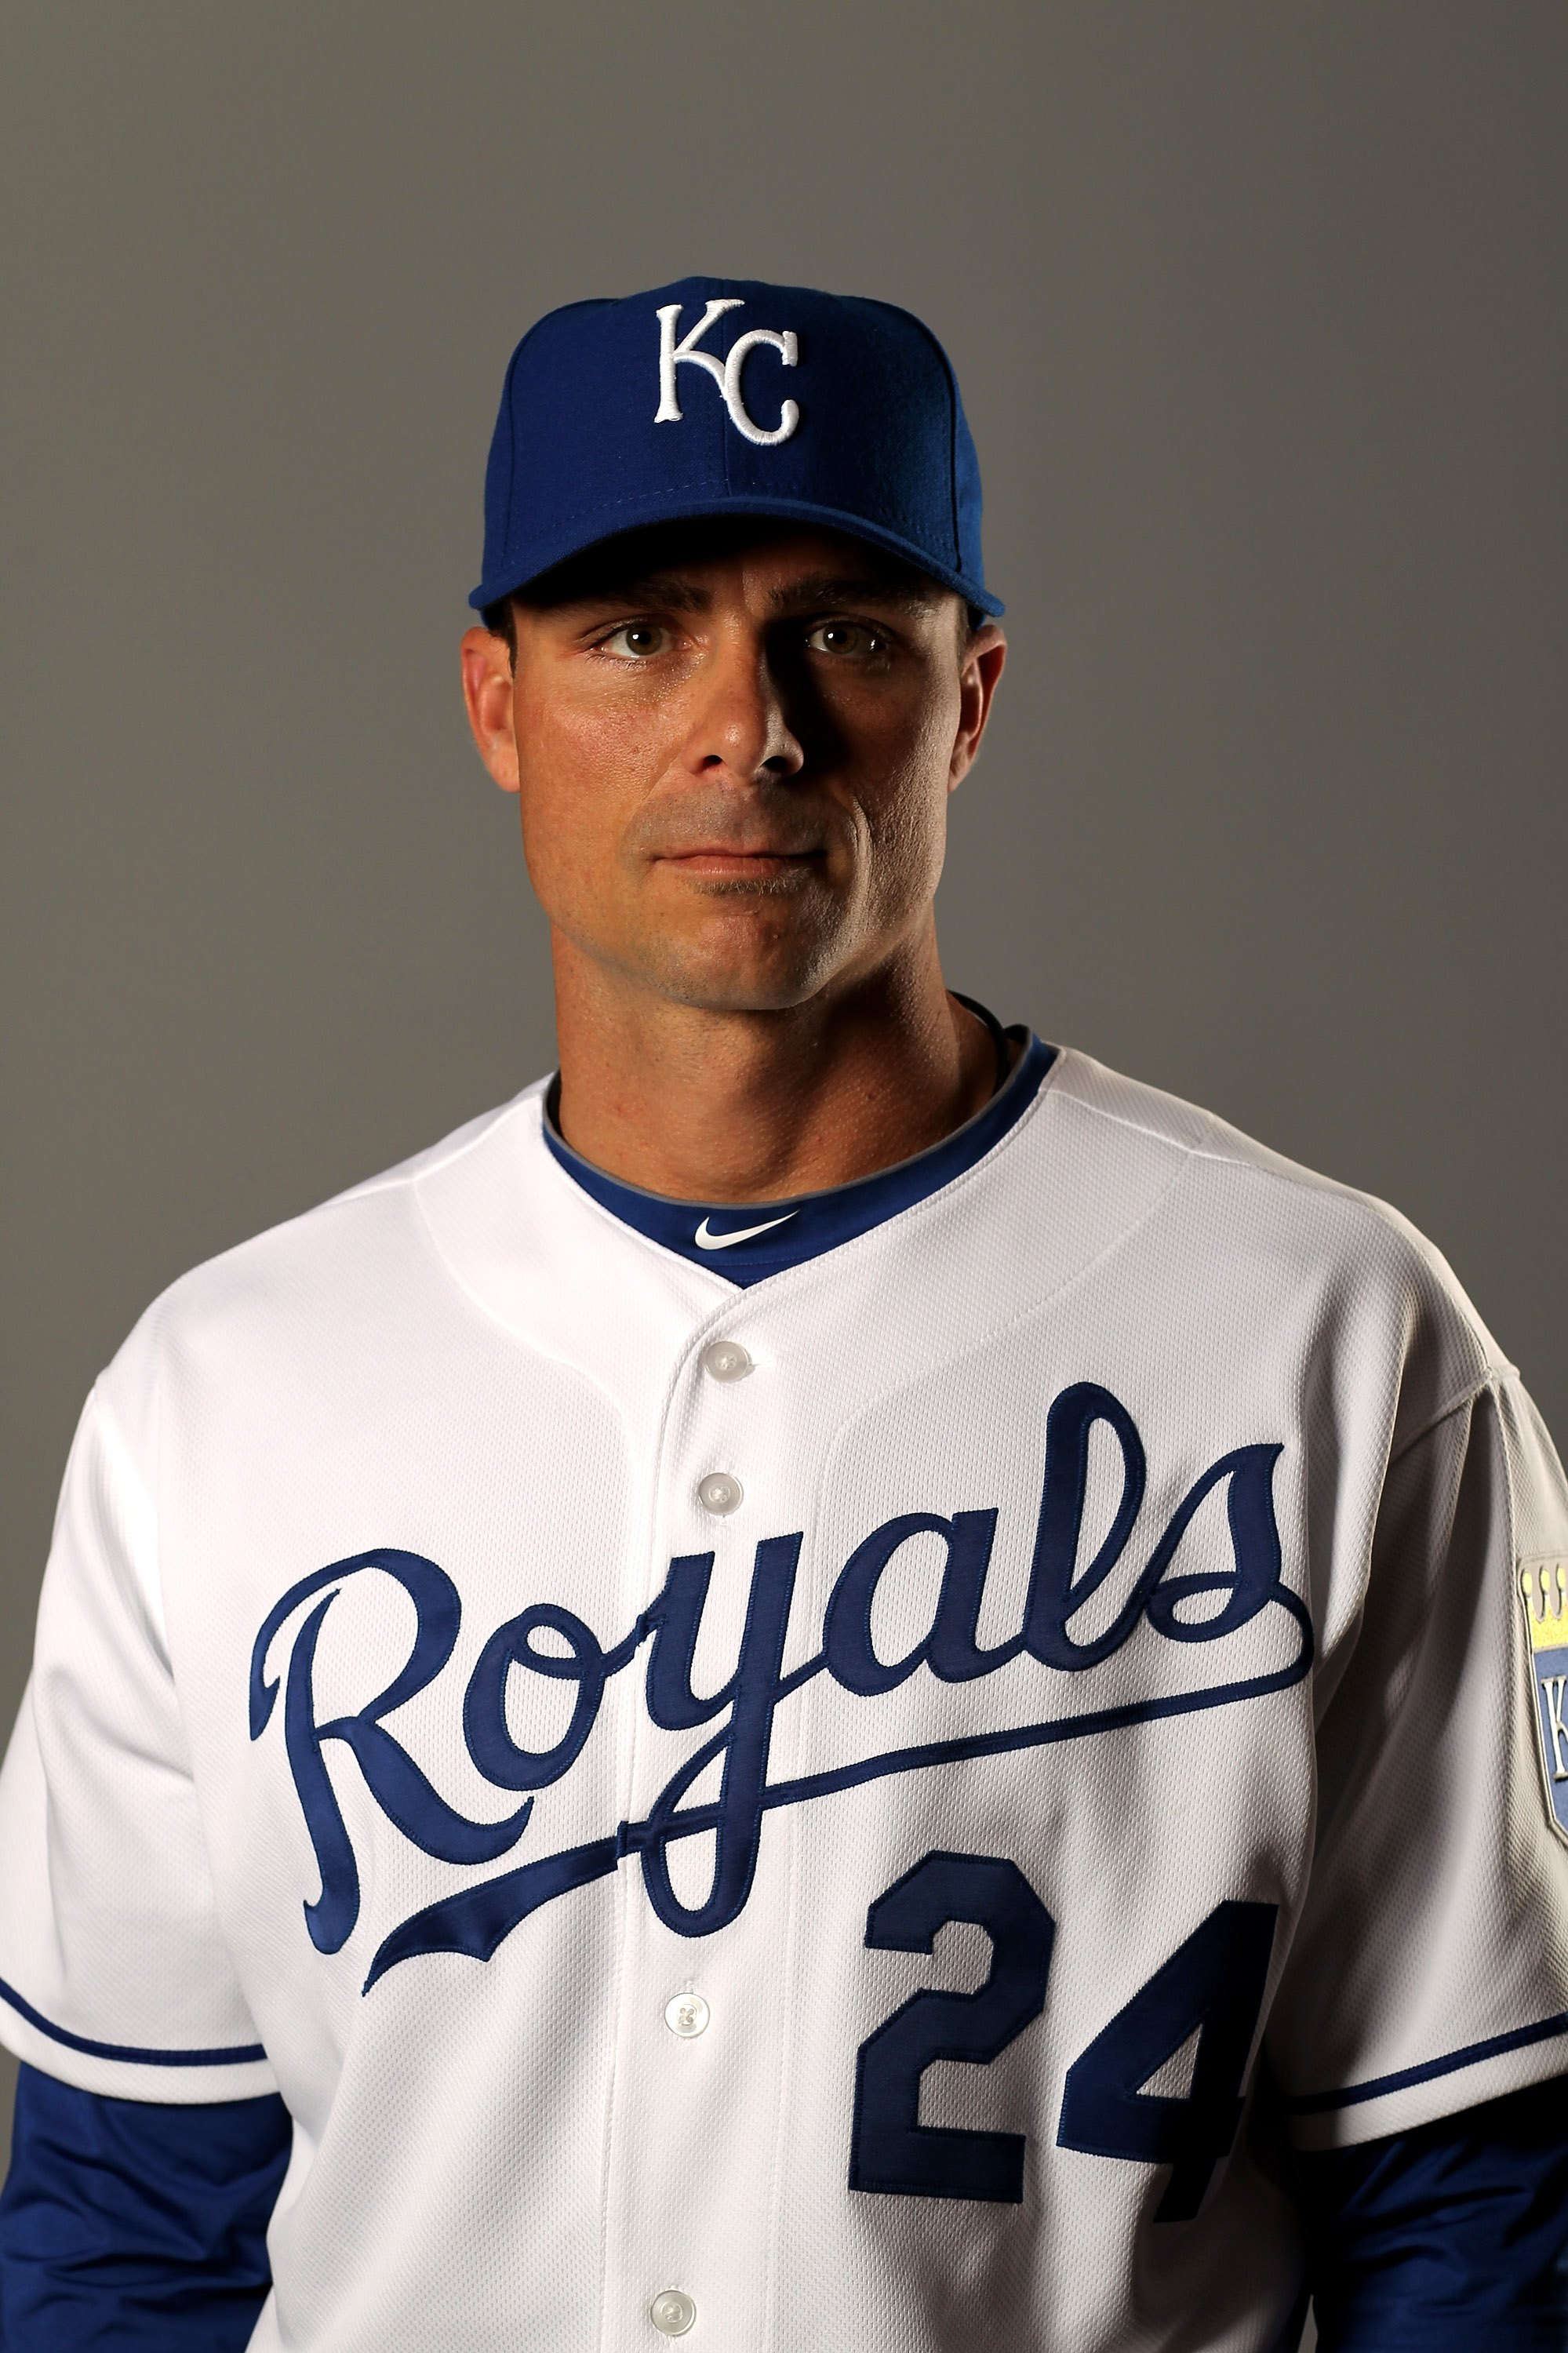 SURPRISE, AZ - FEBRUARY 26:  Rick Ankiel of the Kansas City Royals poses during photo media day at the Royals spring training complex on February 26, 2010 in Surprise, Arizona.  (Photo by Ezra Shaw/Getty Images)